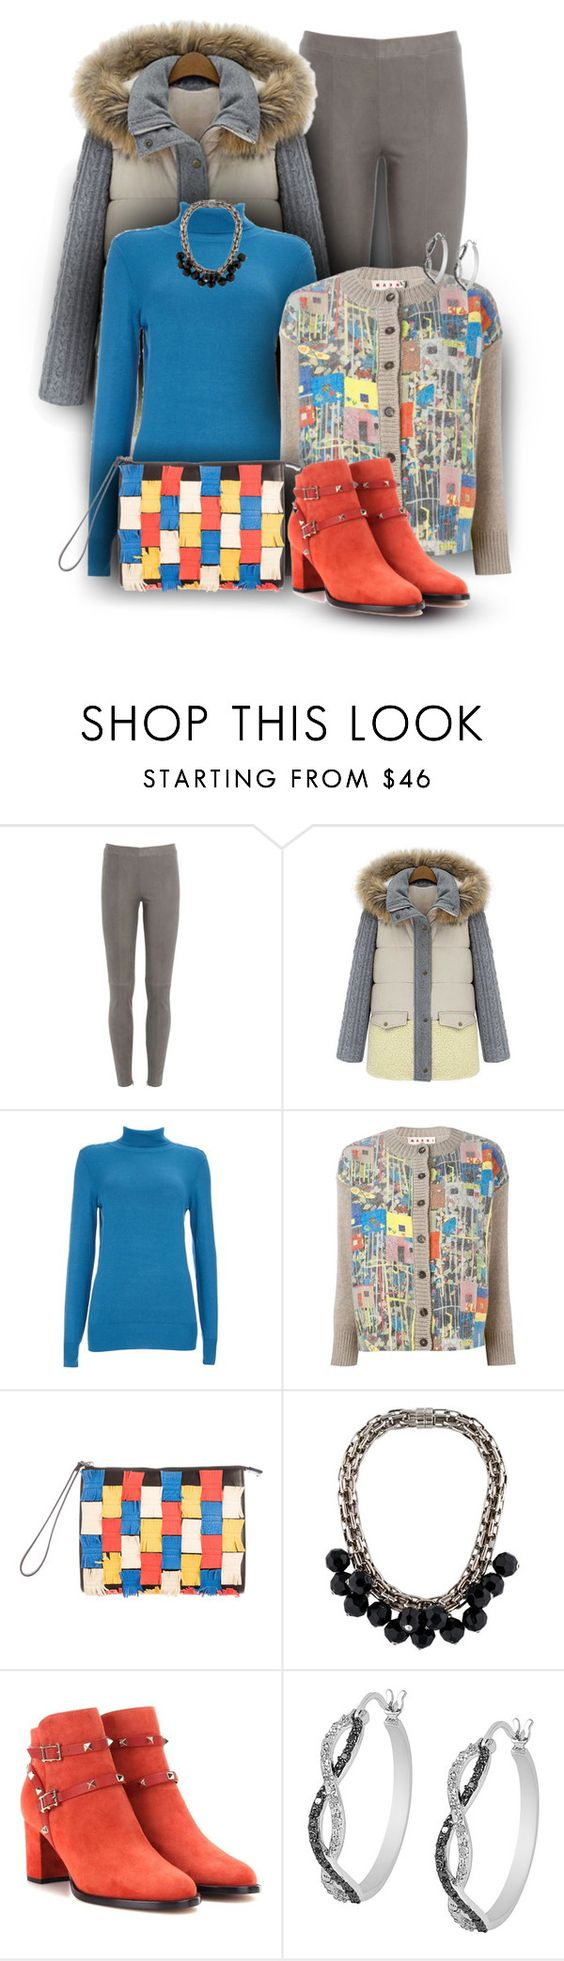 """Marni Cardigan Set"" by franceseattle ❤ liked on Polyvore featuring Steffen Schraut, Trilogy, Wallis, Marni, Valentino and Jewel Exclusive"